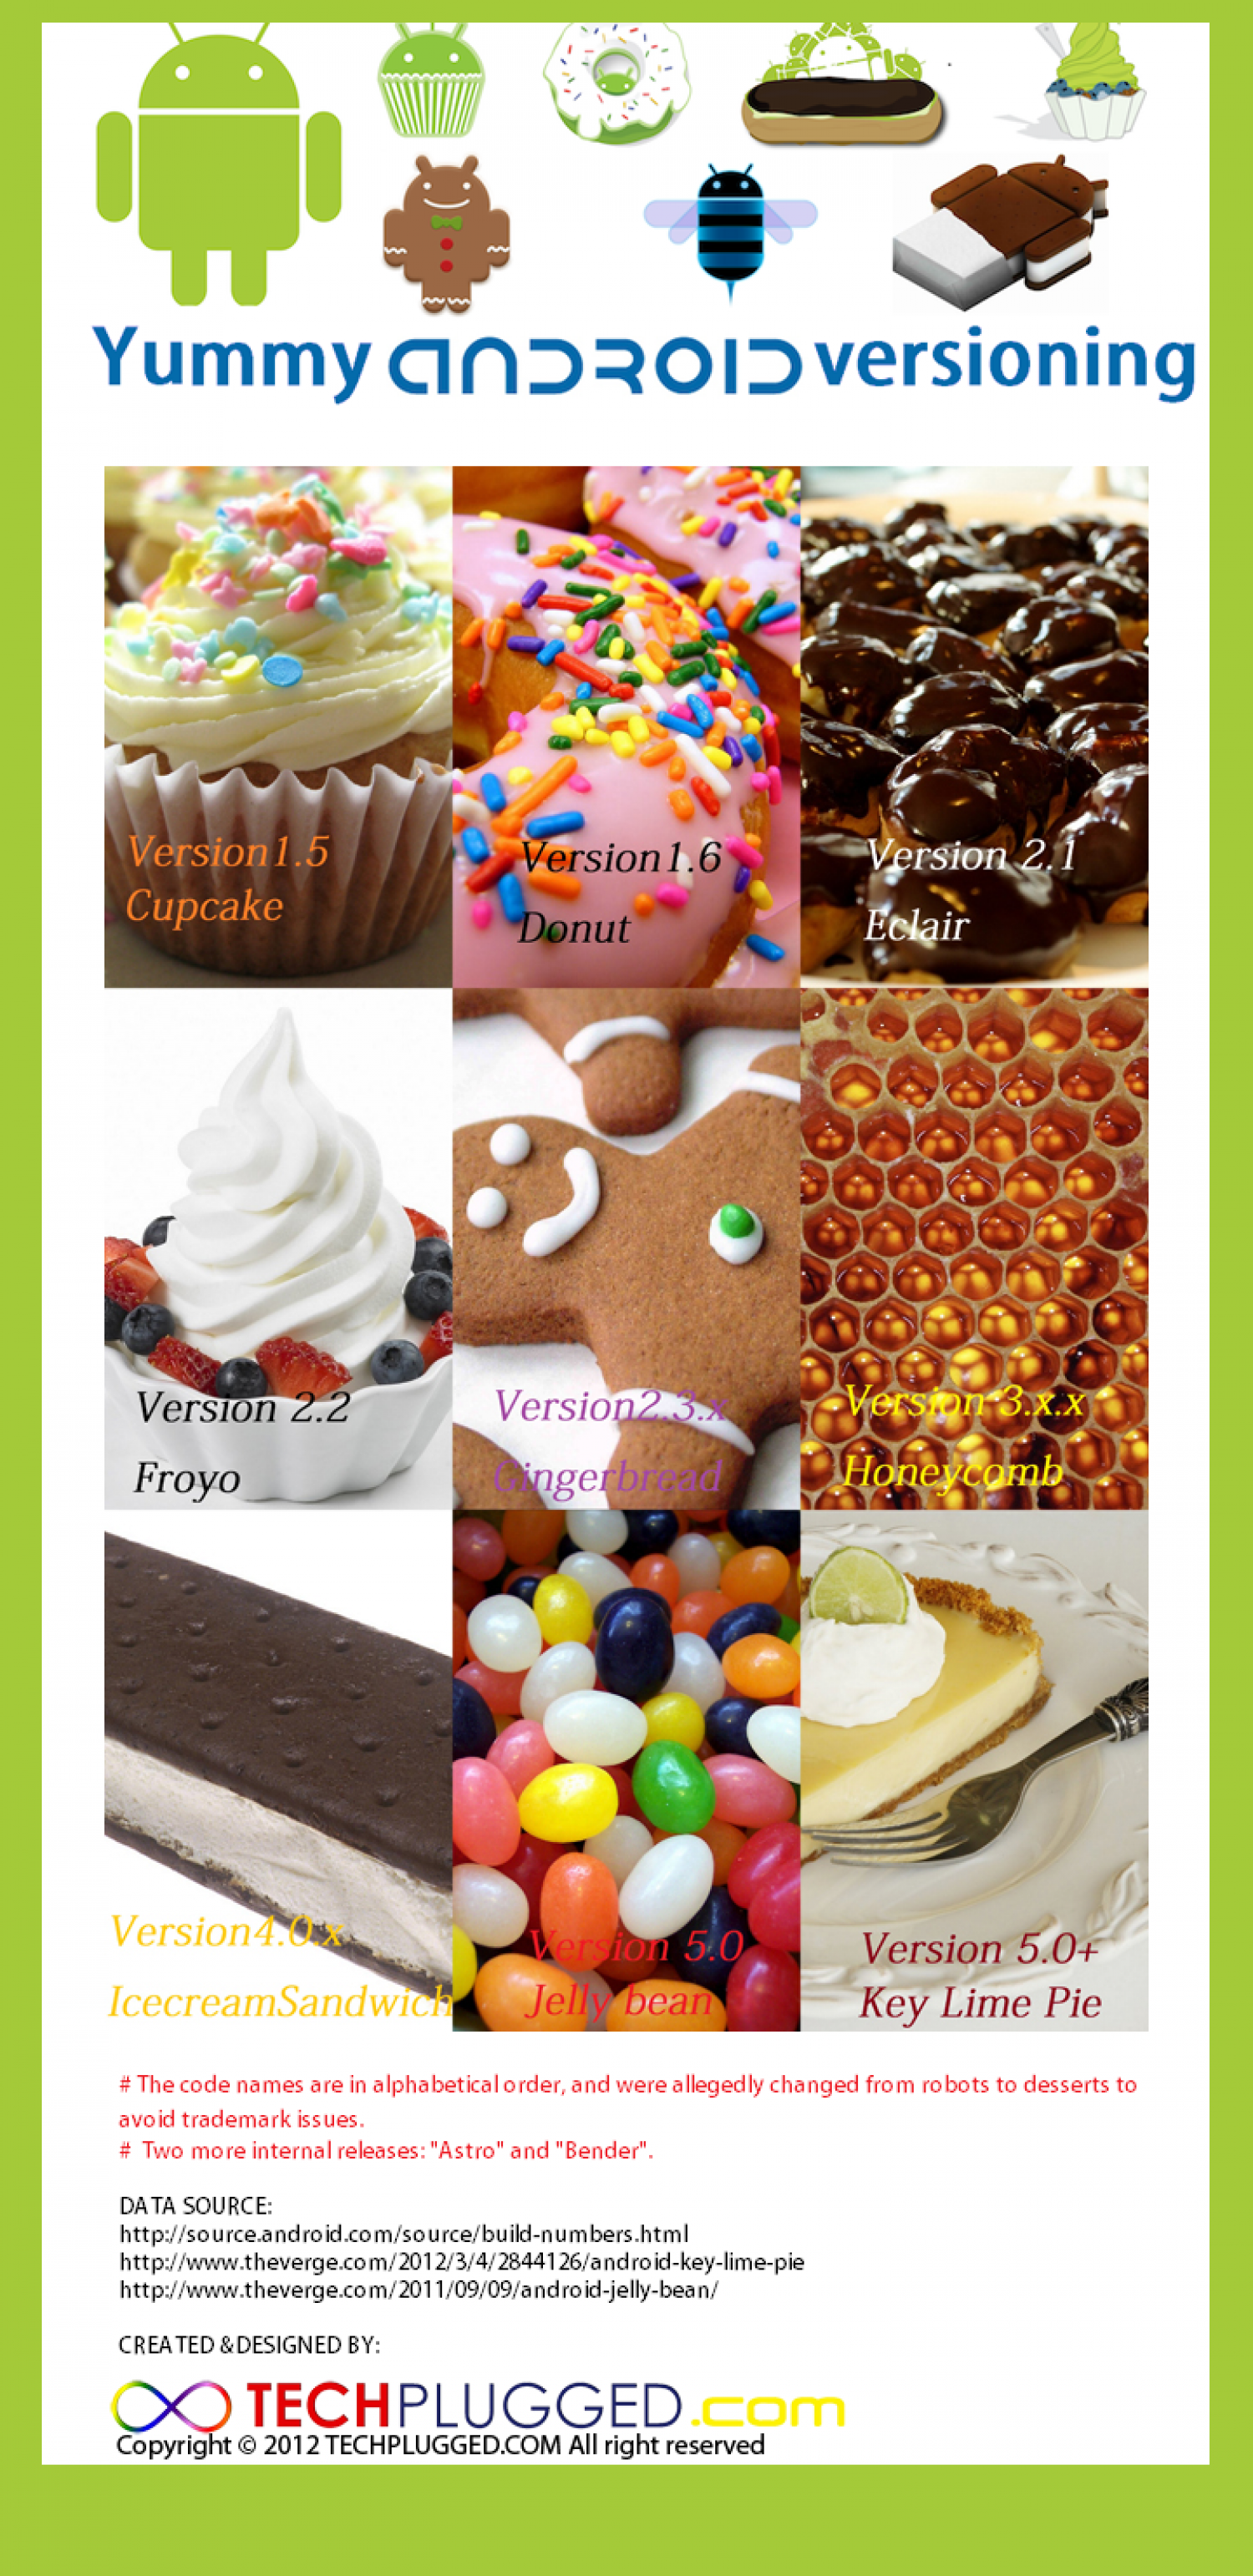 Yummy Android Versioning Infographic